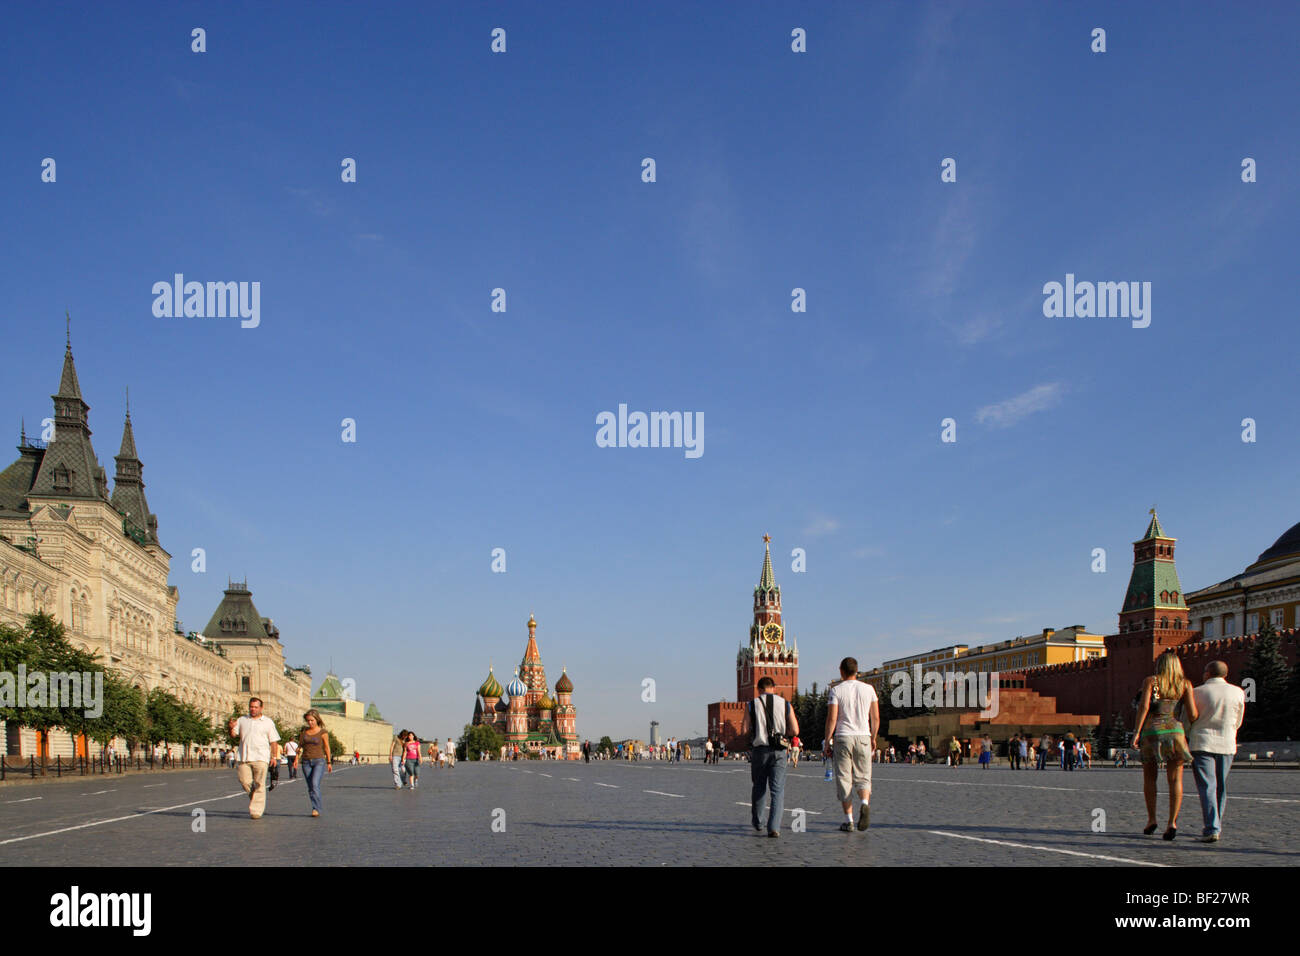 Red Square with GUM, Saint Basil's Cathedral, Saviour tower, Spasskaya, and the Lenin mausoleum, Moscow, Russia - Stock Image